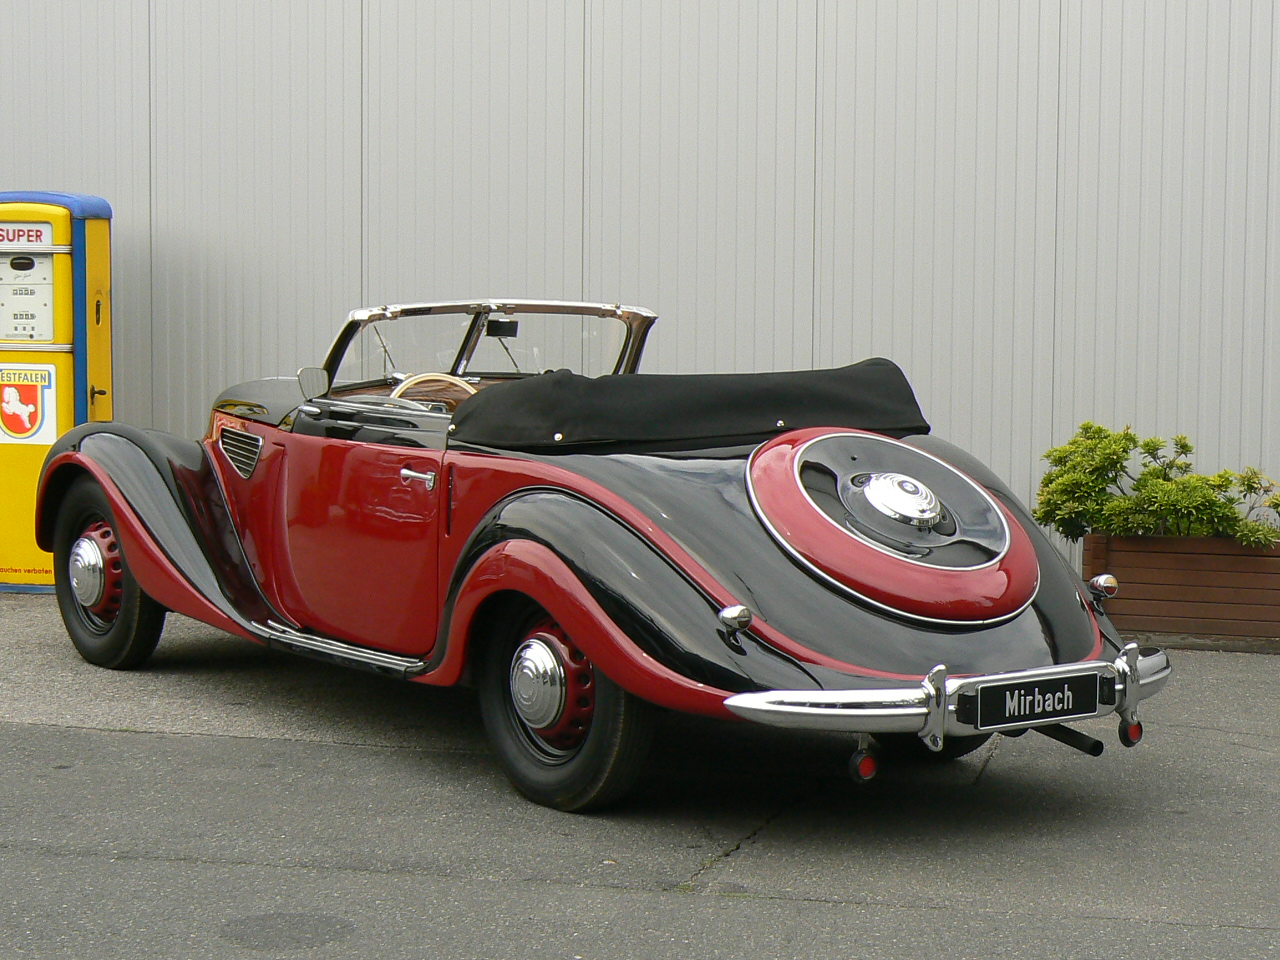 Bmw 327 Sport Cabriolet Photos Photogallery With 12 Pics